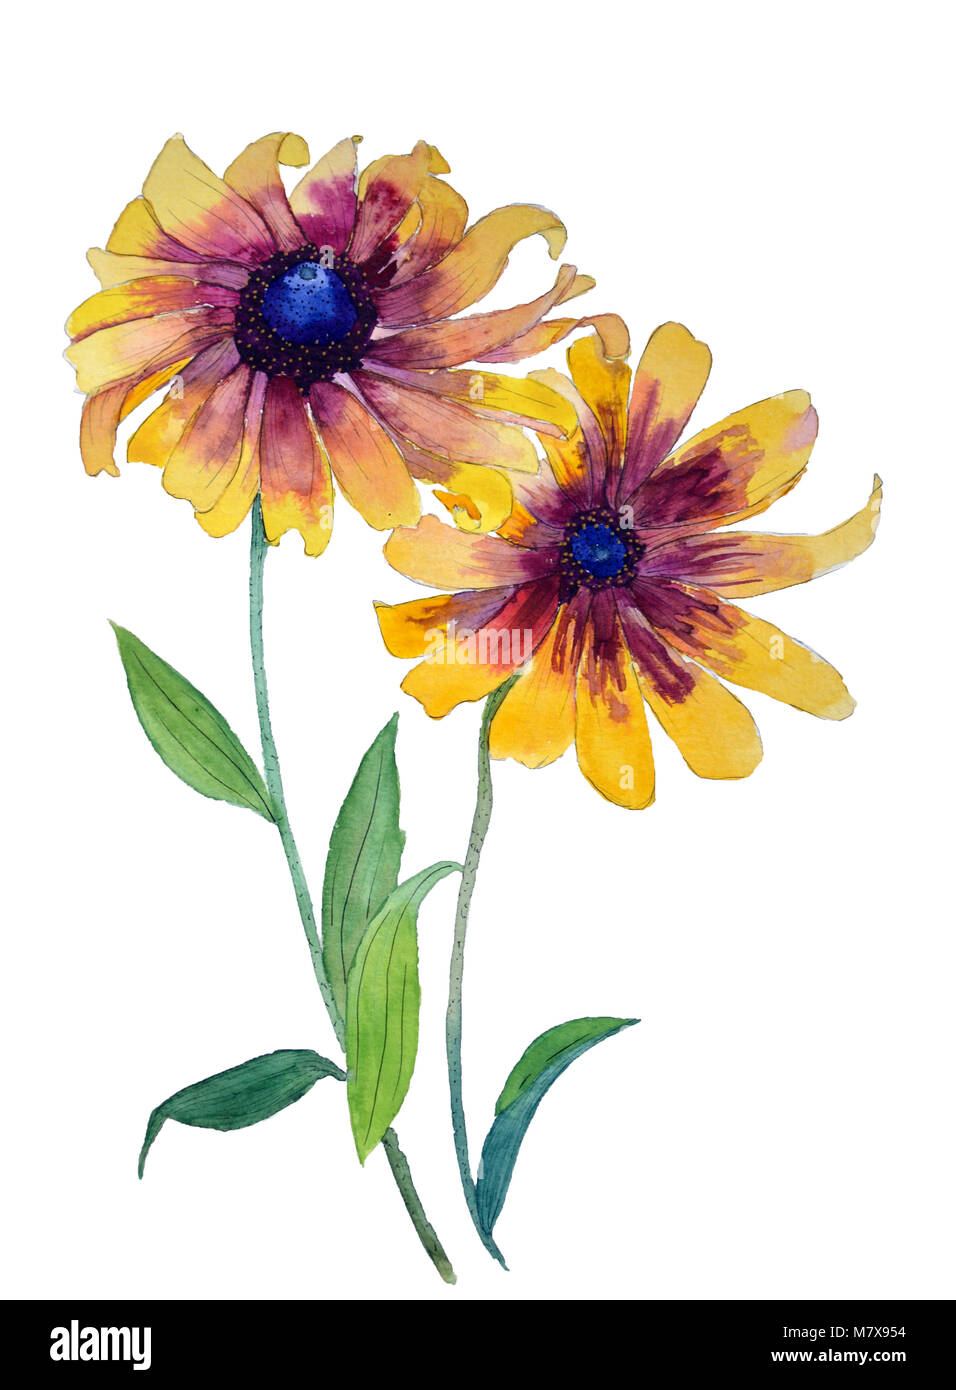 Watercolor Painting Rudbeckia Yellow Daisy Echinacea Flower On A